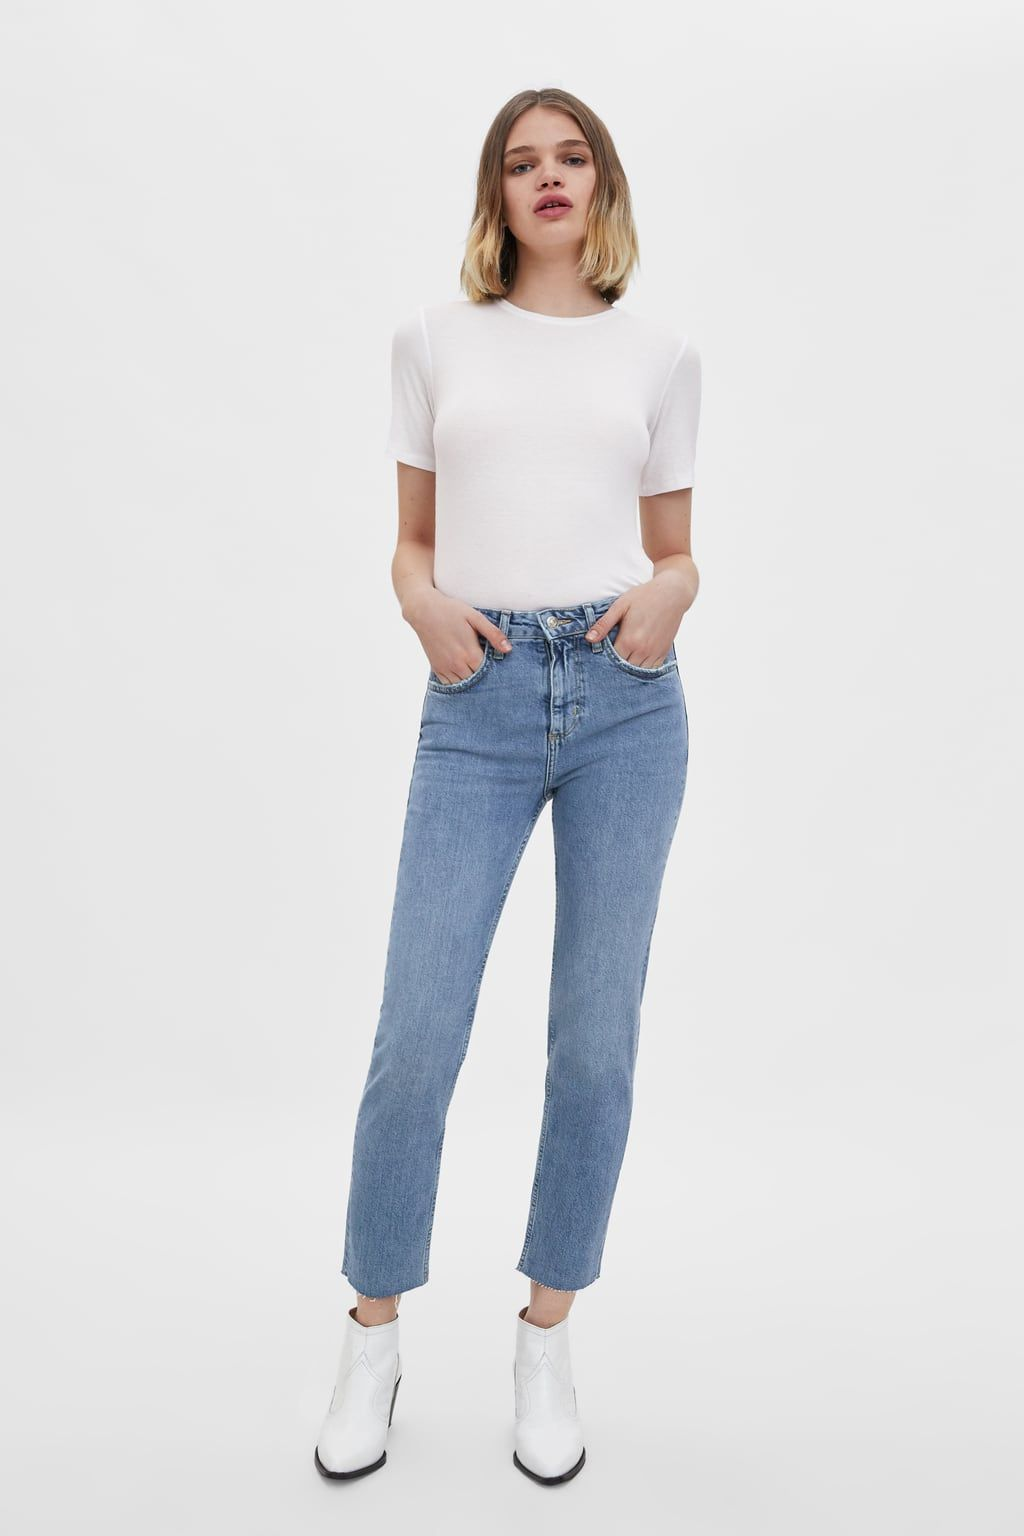 3b038ef8f25f Slim fit hi-rise jeans in 2019 | Wish list | Jeans, Women's high ...